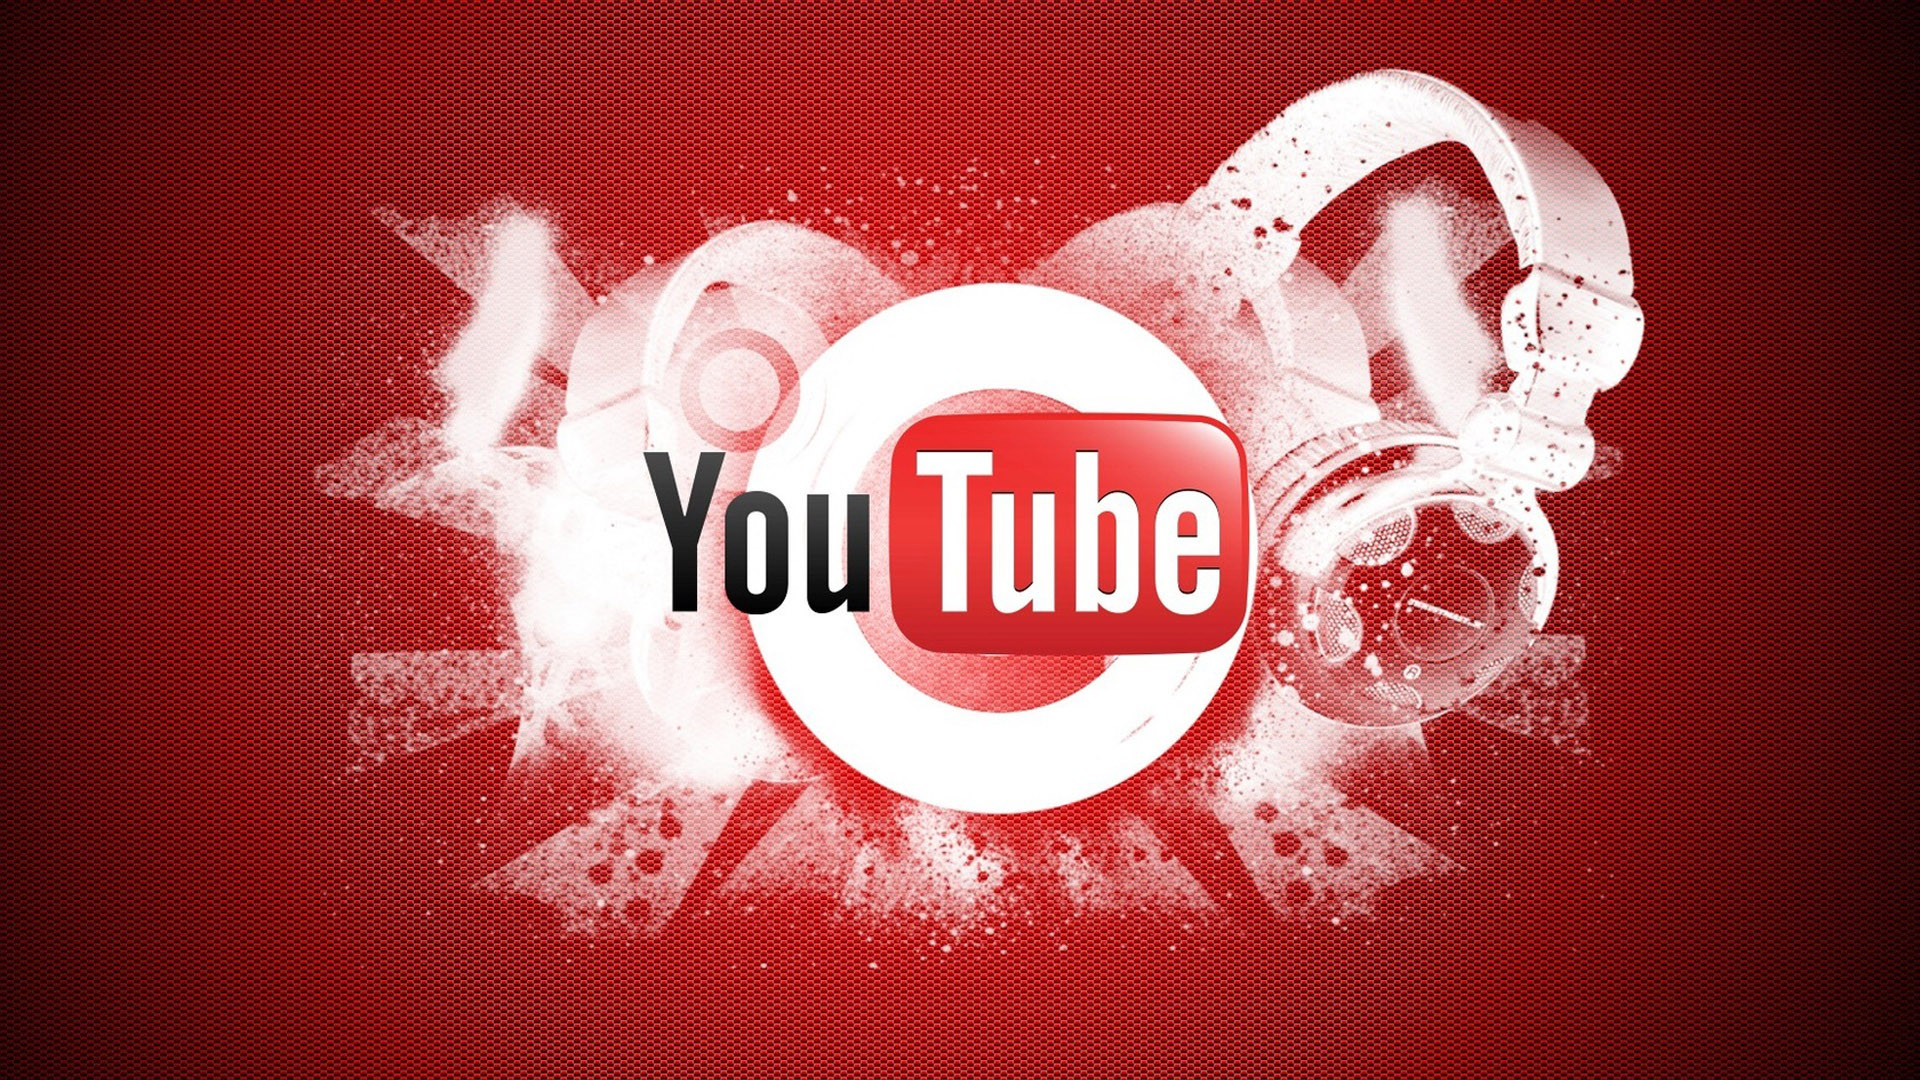 Logotipo de YouTube